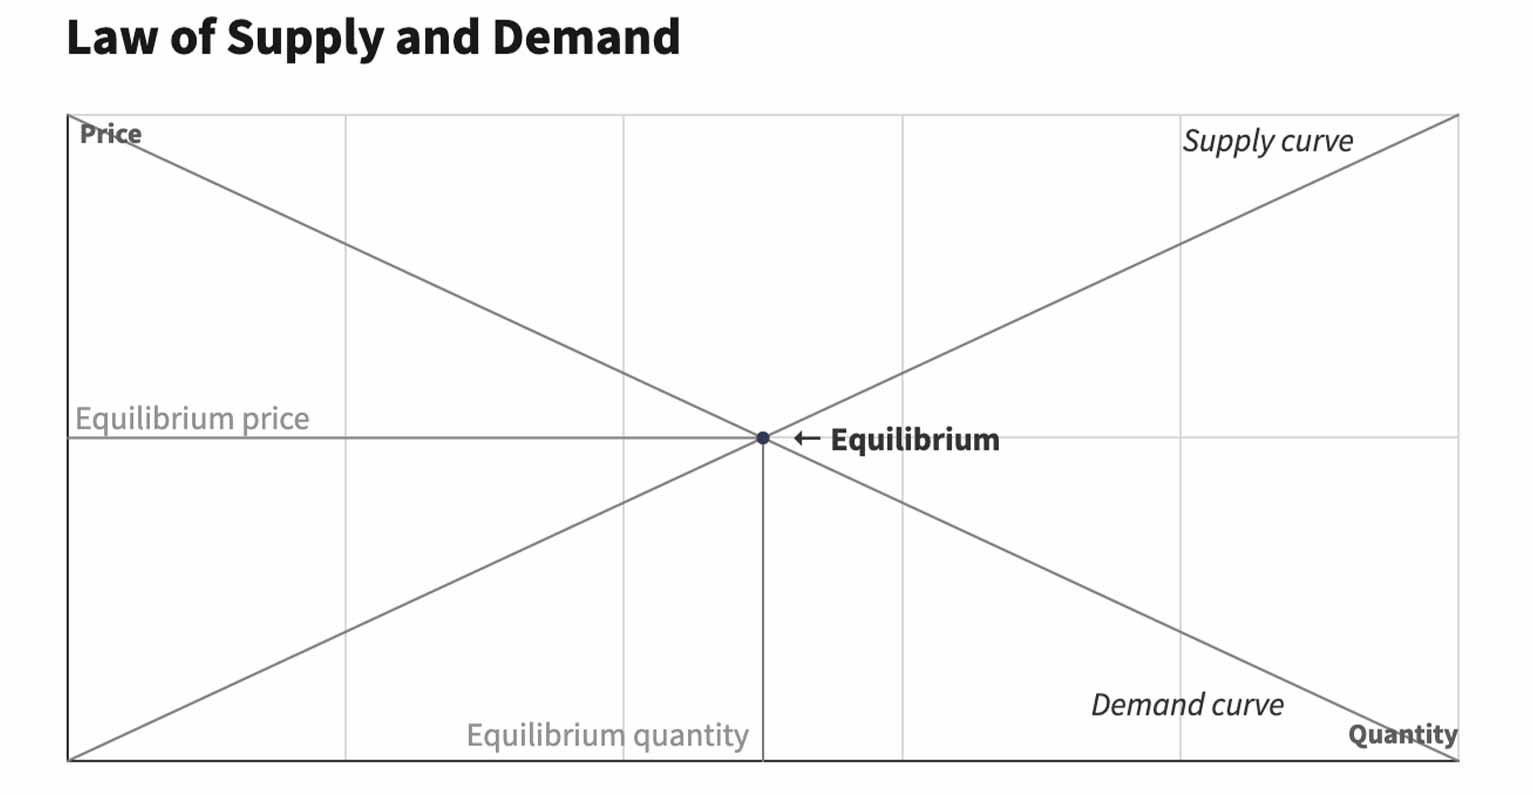 This relationship between supply and demand can be illustrated in the form of a supply and demand curve.